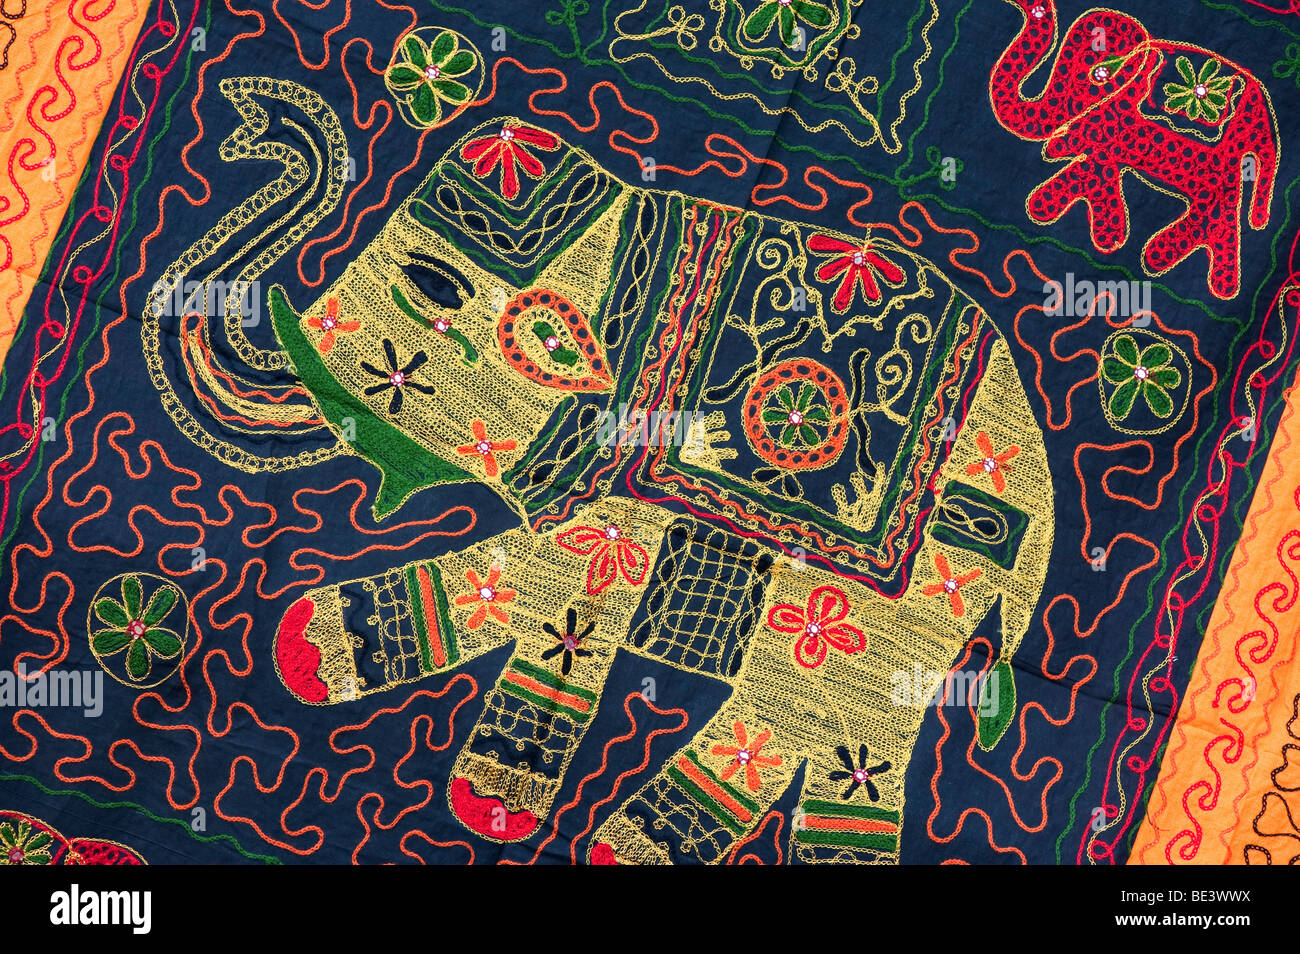 Indian Embroidery Stock Photos Indian Embroidery Stock Images Alamy